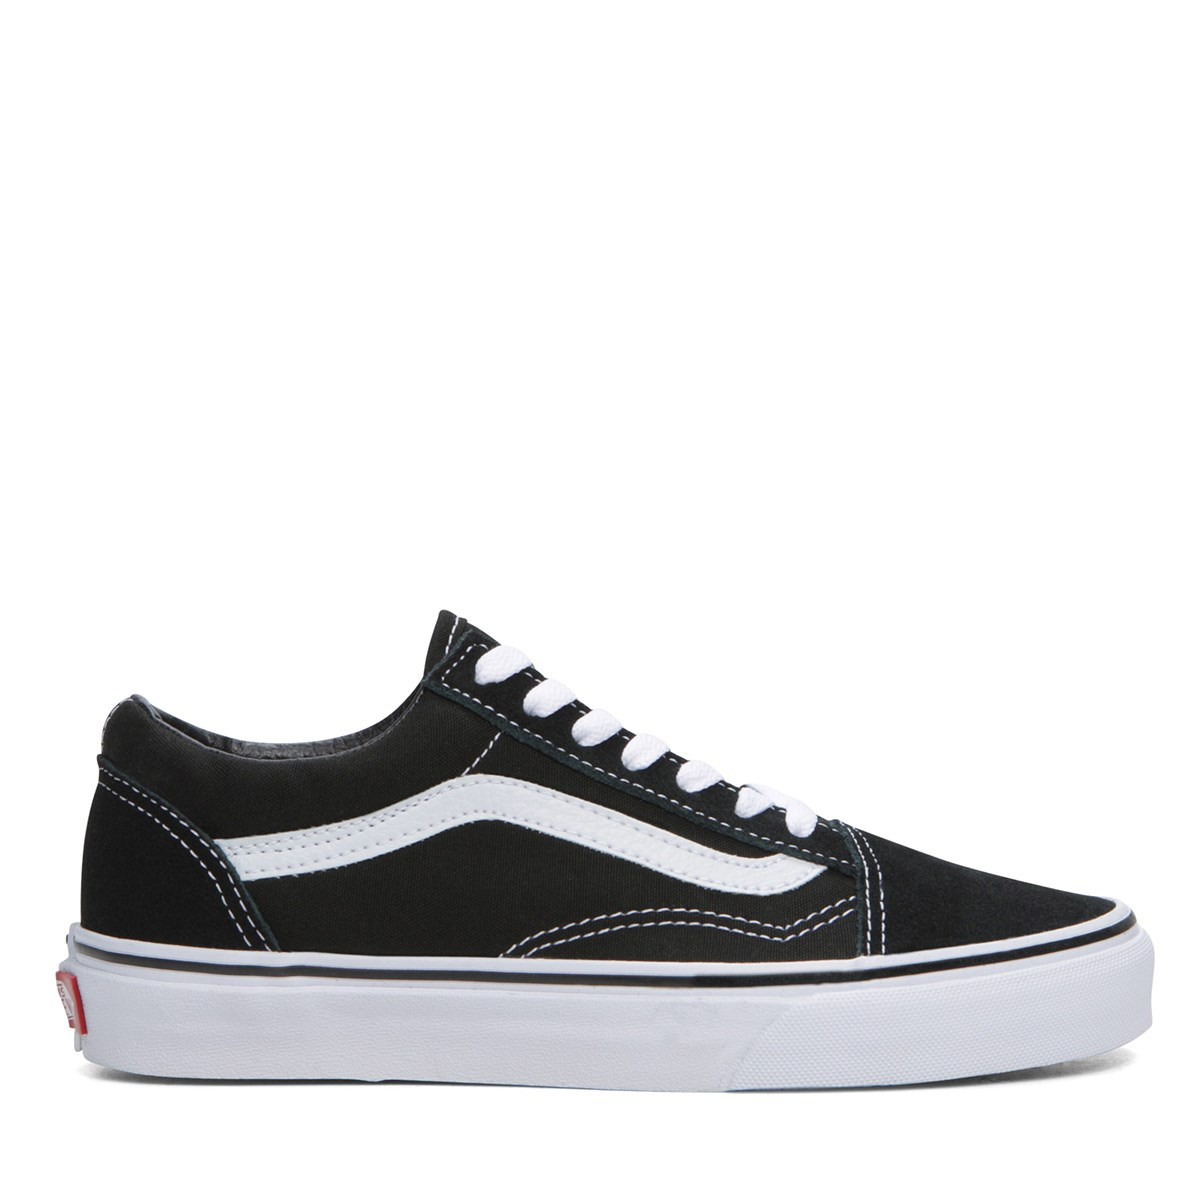 1df7504d0b Old Skool Black   White Sneaker. Previous. default view ...